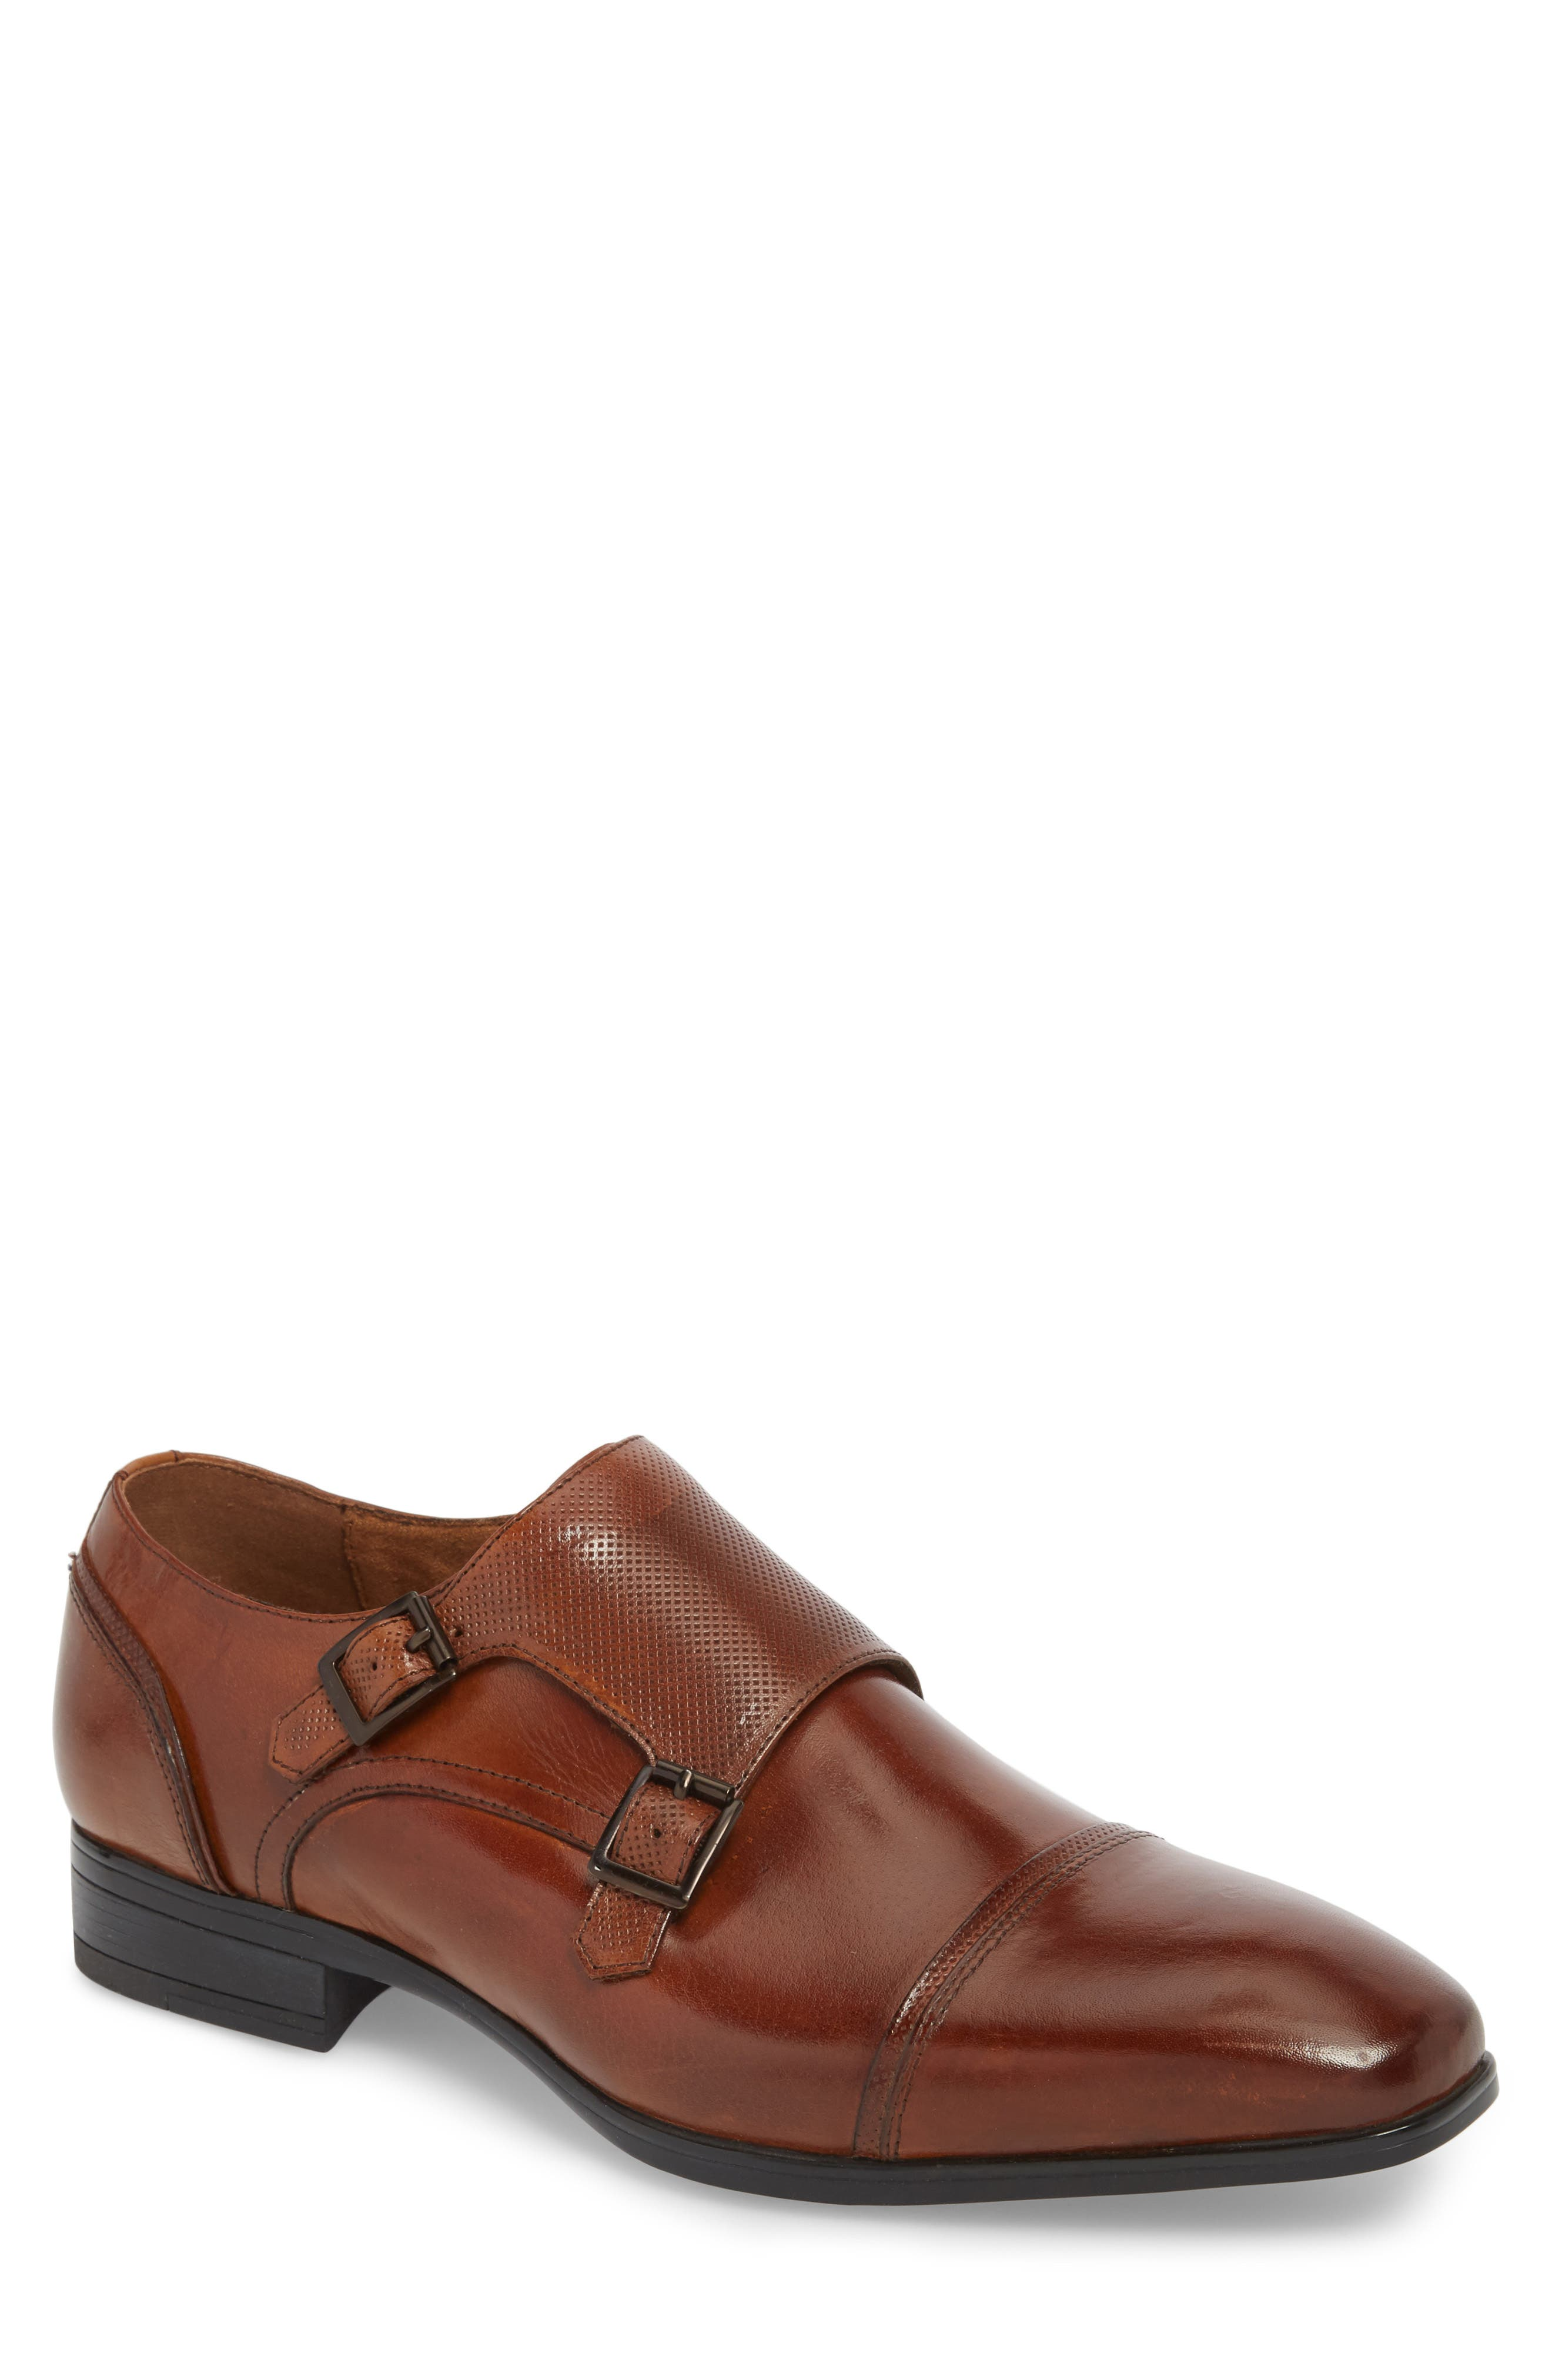 Oliver Cap Toe Monk Shoe,                             Main thumbnail 1, color,                             Cognac Leather